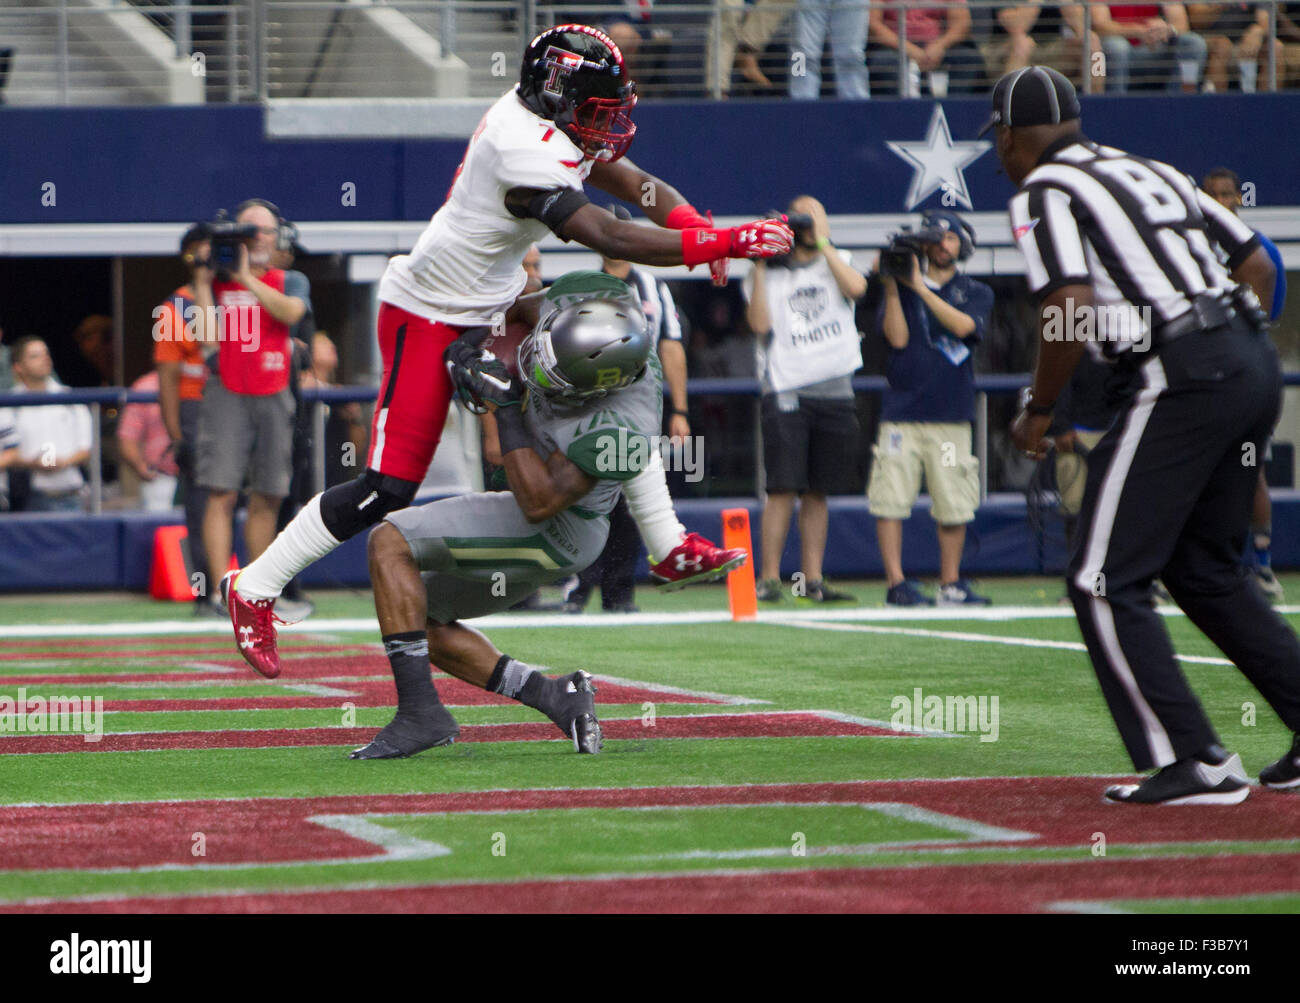 Arlington, Texas, USA. 3rd Oct, 2015. Baylor Bears wide receiver Corey Coleman #1 scores a touchdown during the Stock Photo